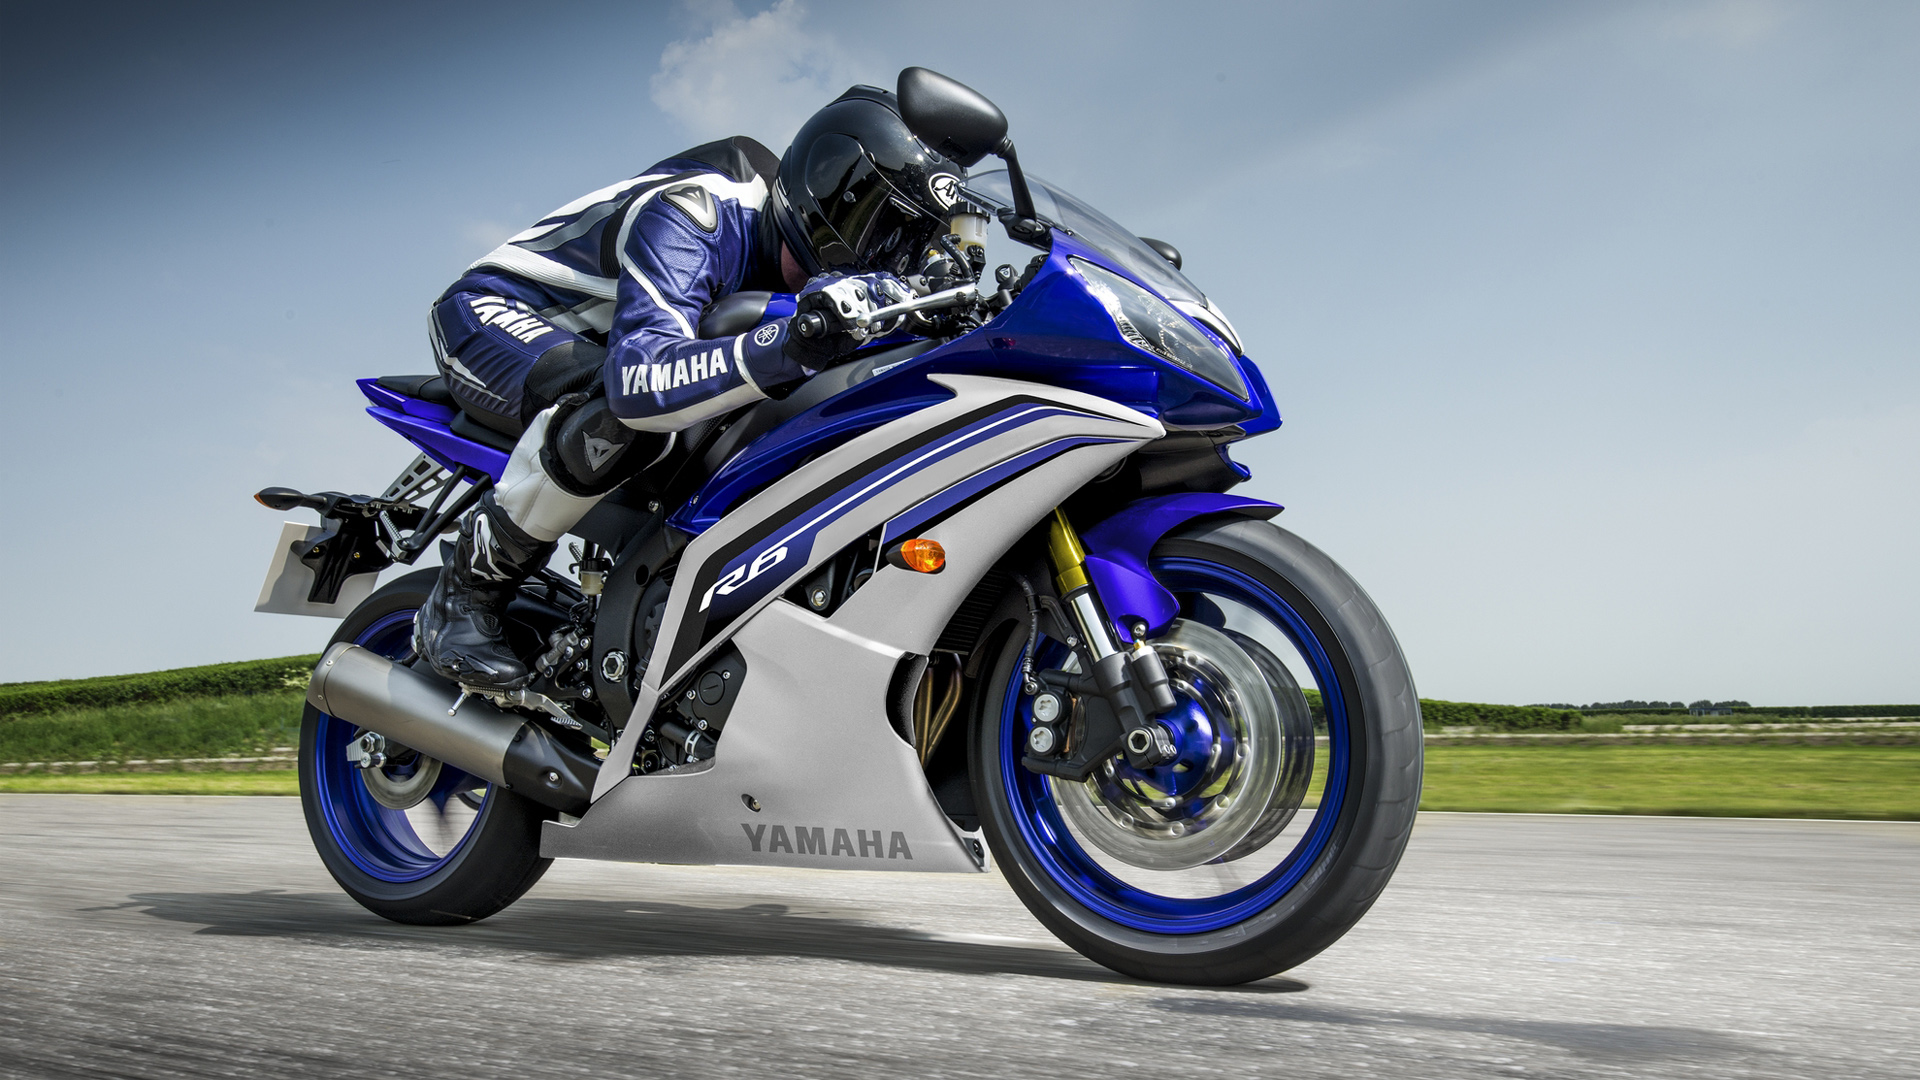 yamaha r6, hd bikes, 4k wallpapers, images, backgrounds, photos and